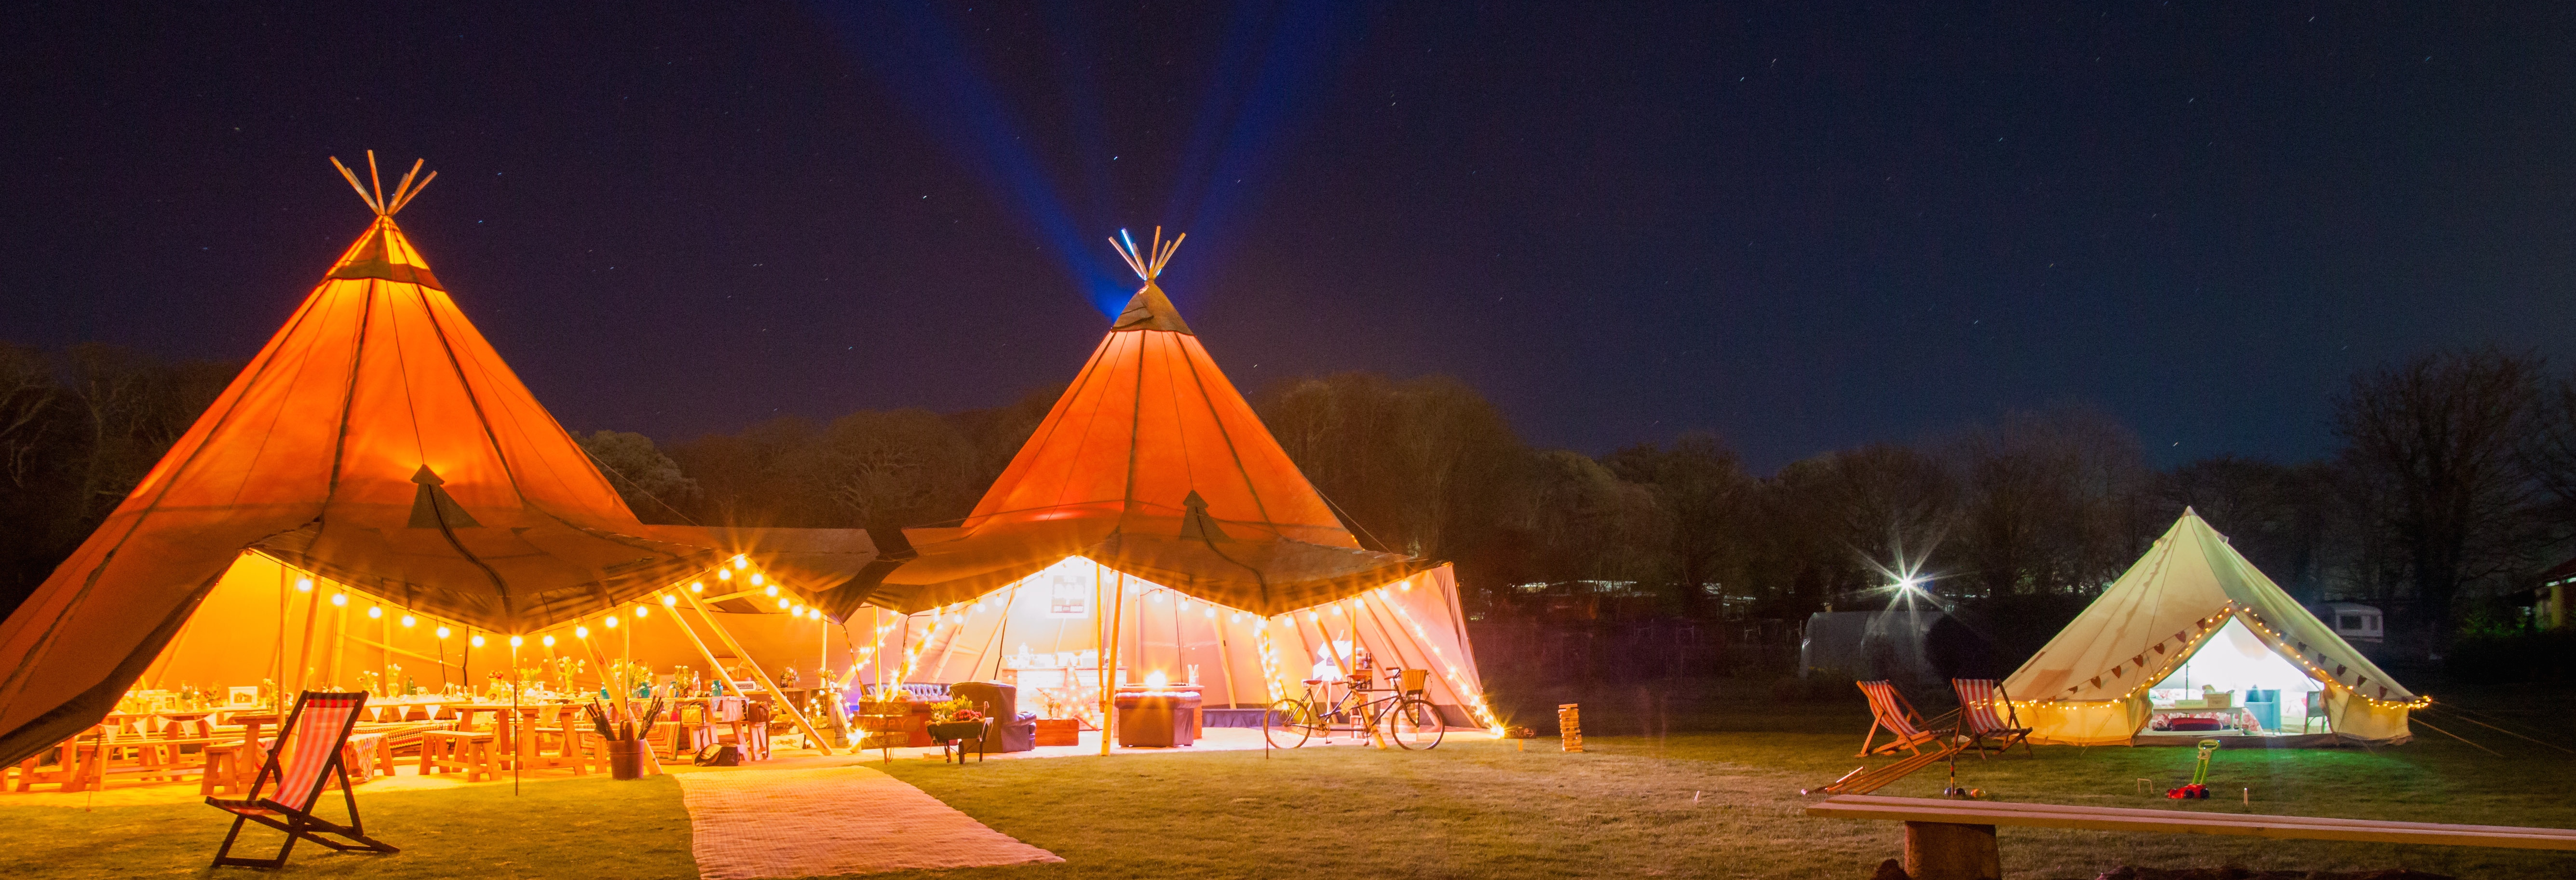 Tipi & Bell tent glamping at Magical Camping